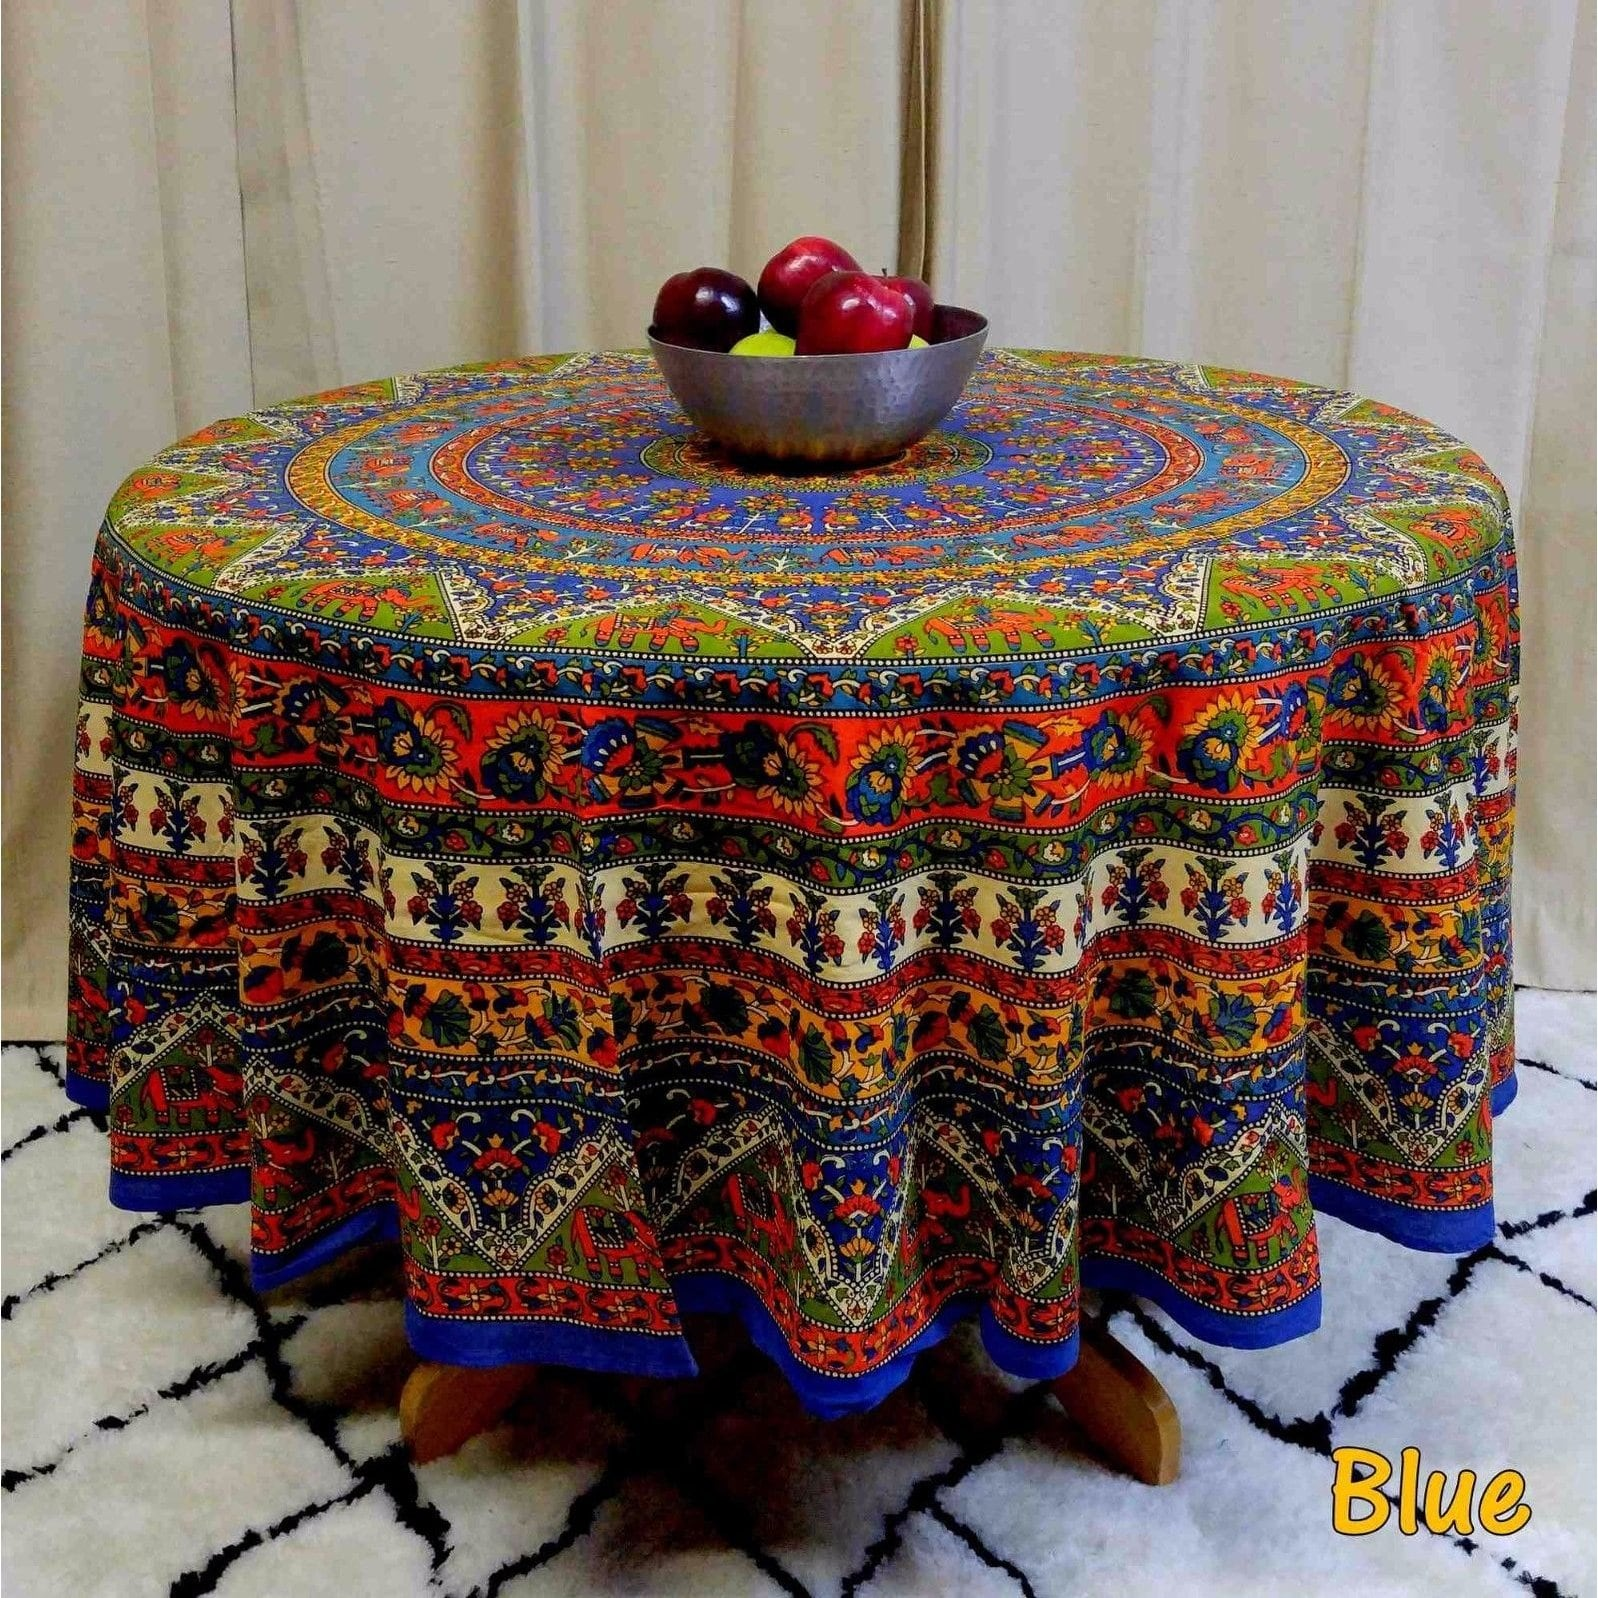 floral tablecloths our best table handmade mandala and elephant printed cotton tablecloth available red blue brown two sizes round accent cloths linens decor tall narrow entryway